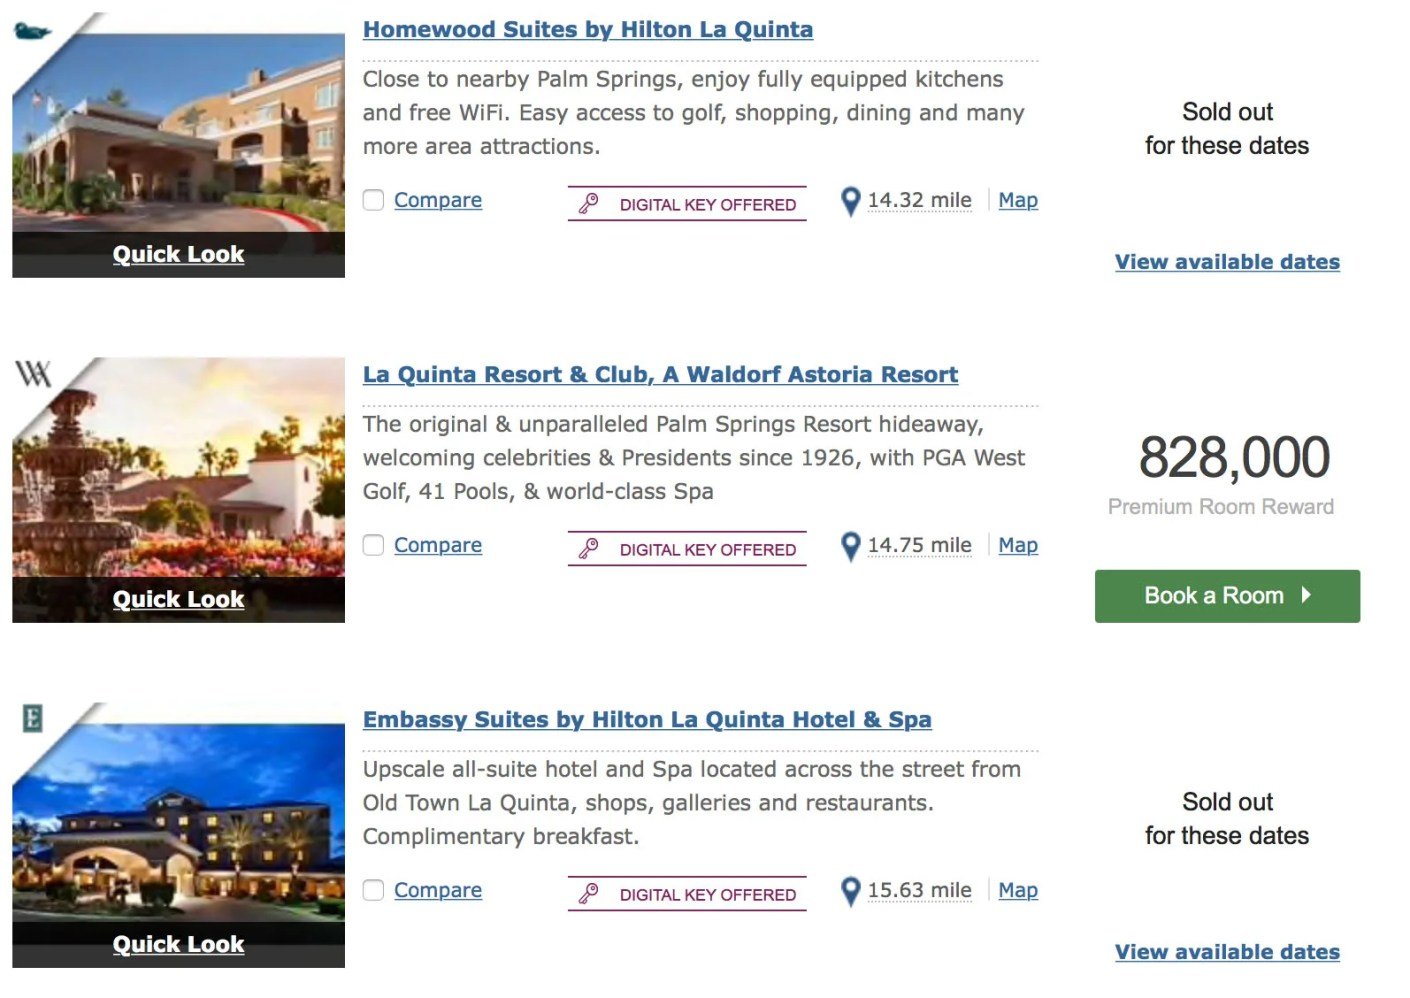 These properties - while nice - were either sold out or asking for way more points per night.